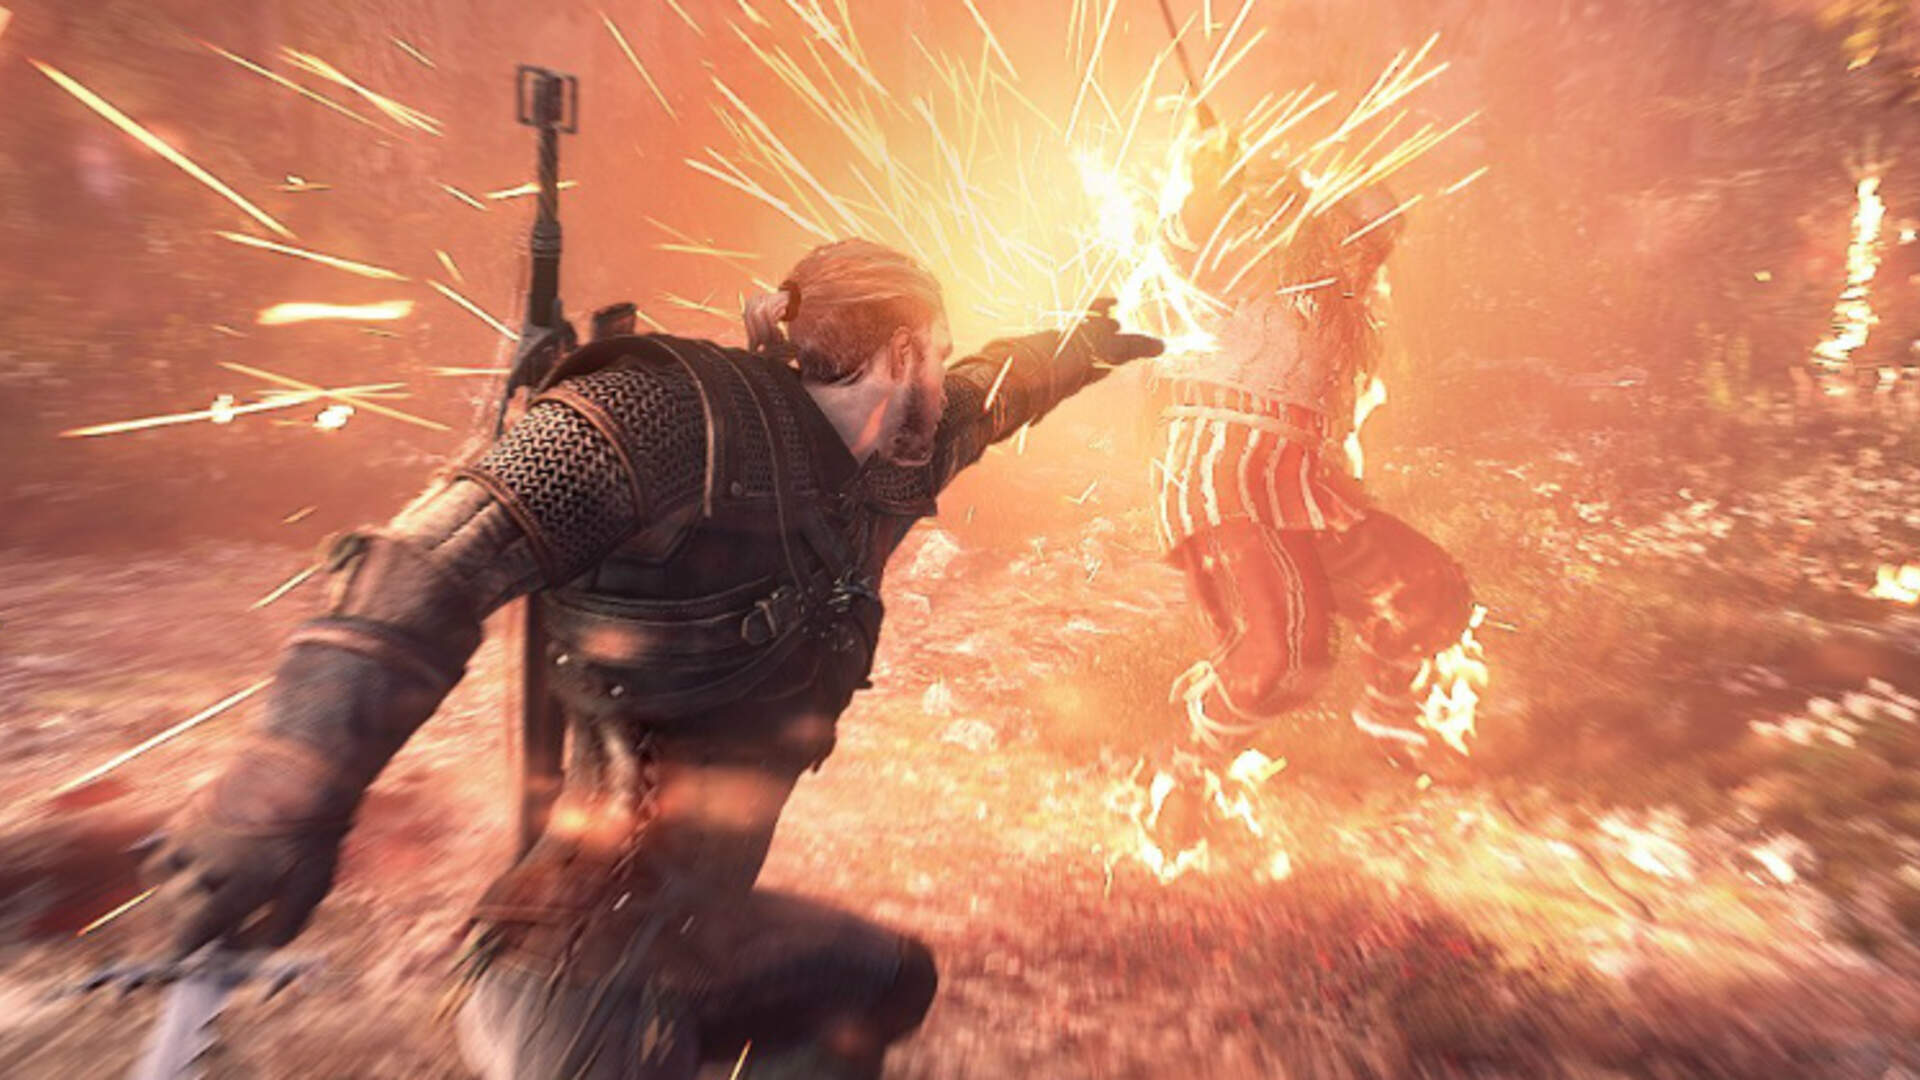 The Witcher 3: Wild Hunt PC Requirements Clarify the New Normal